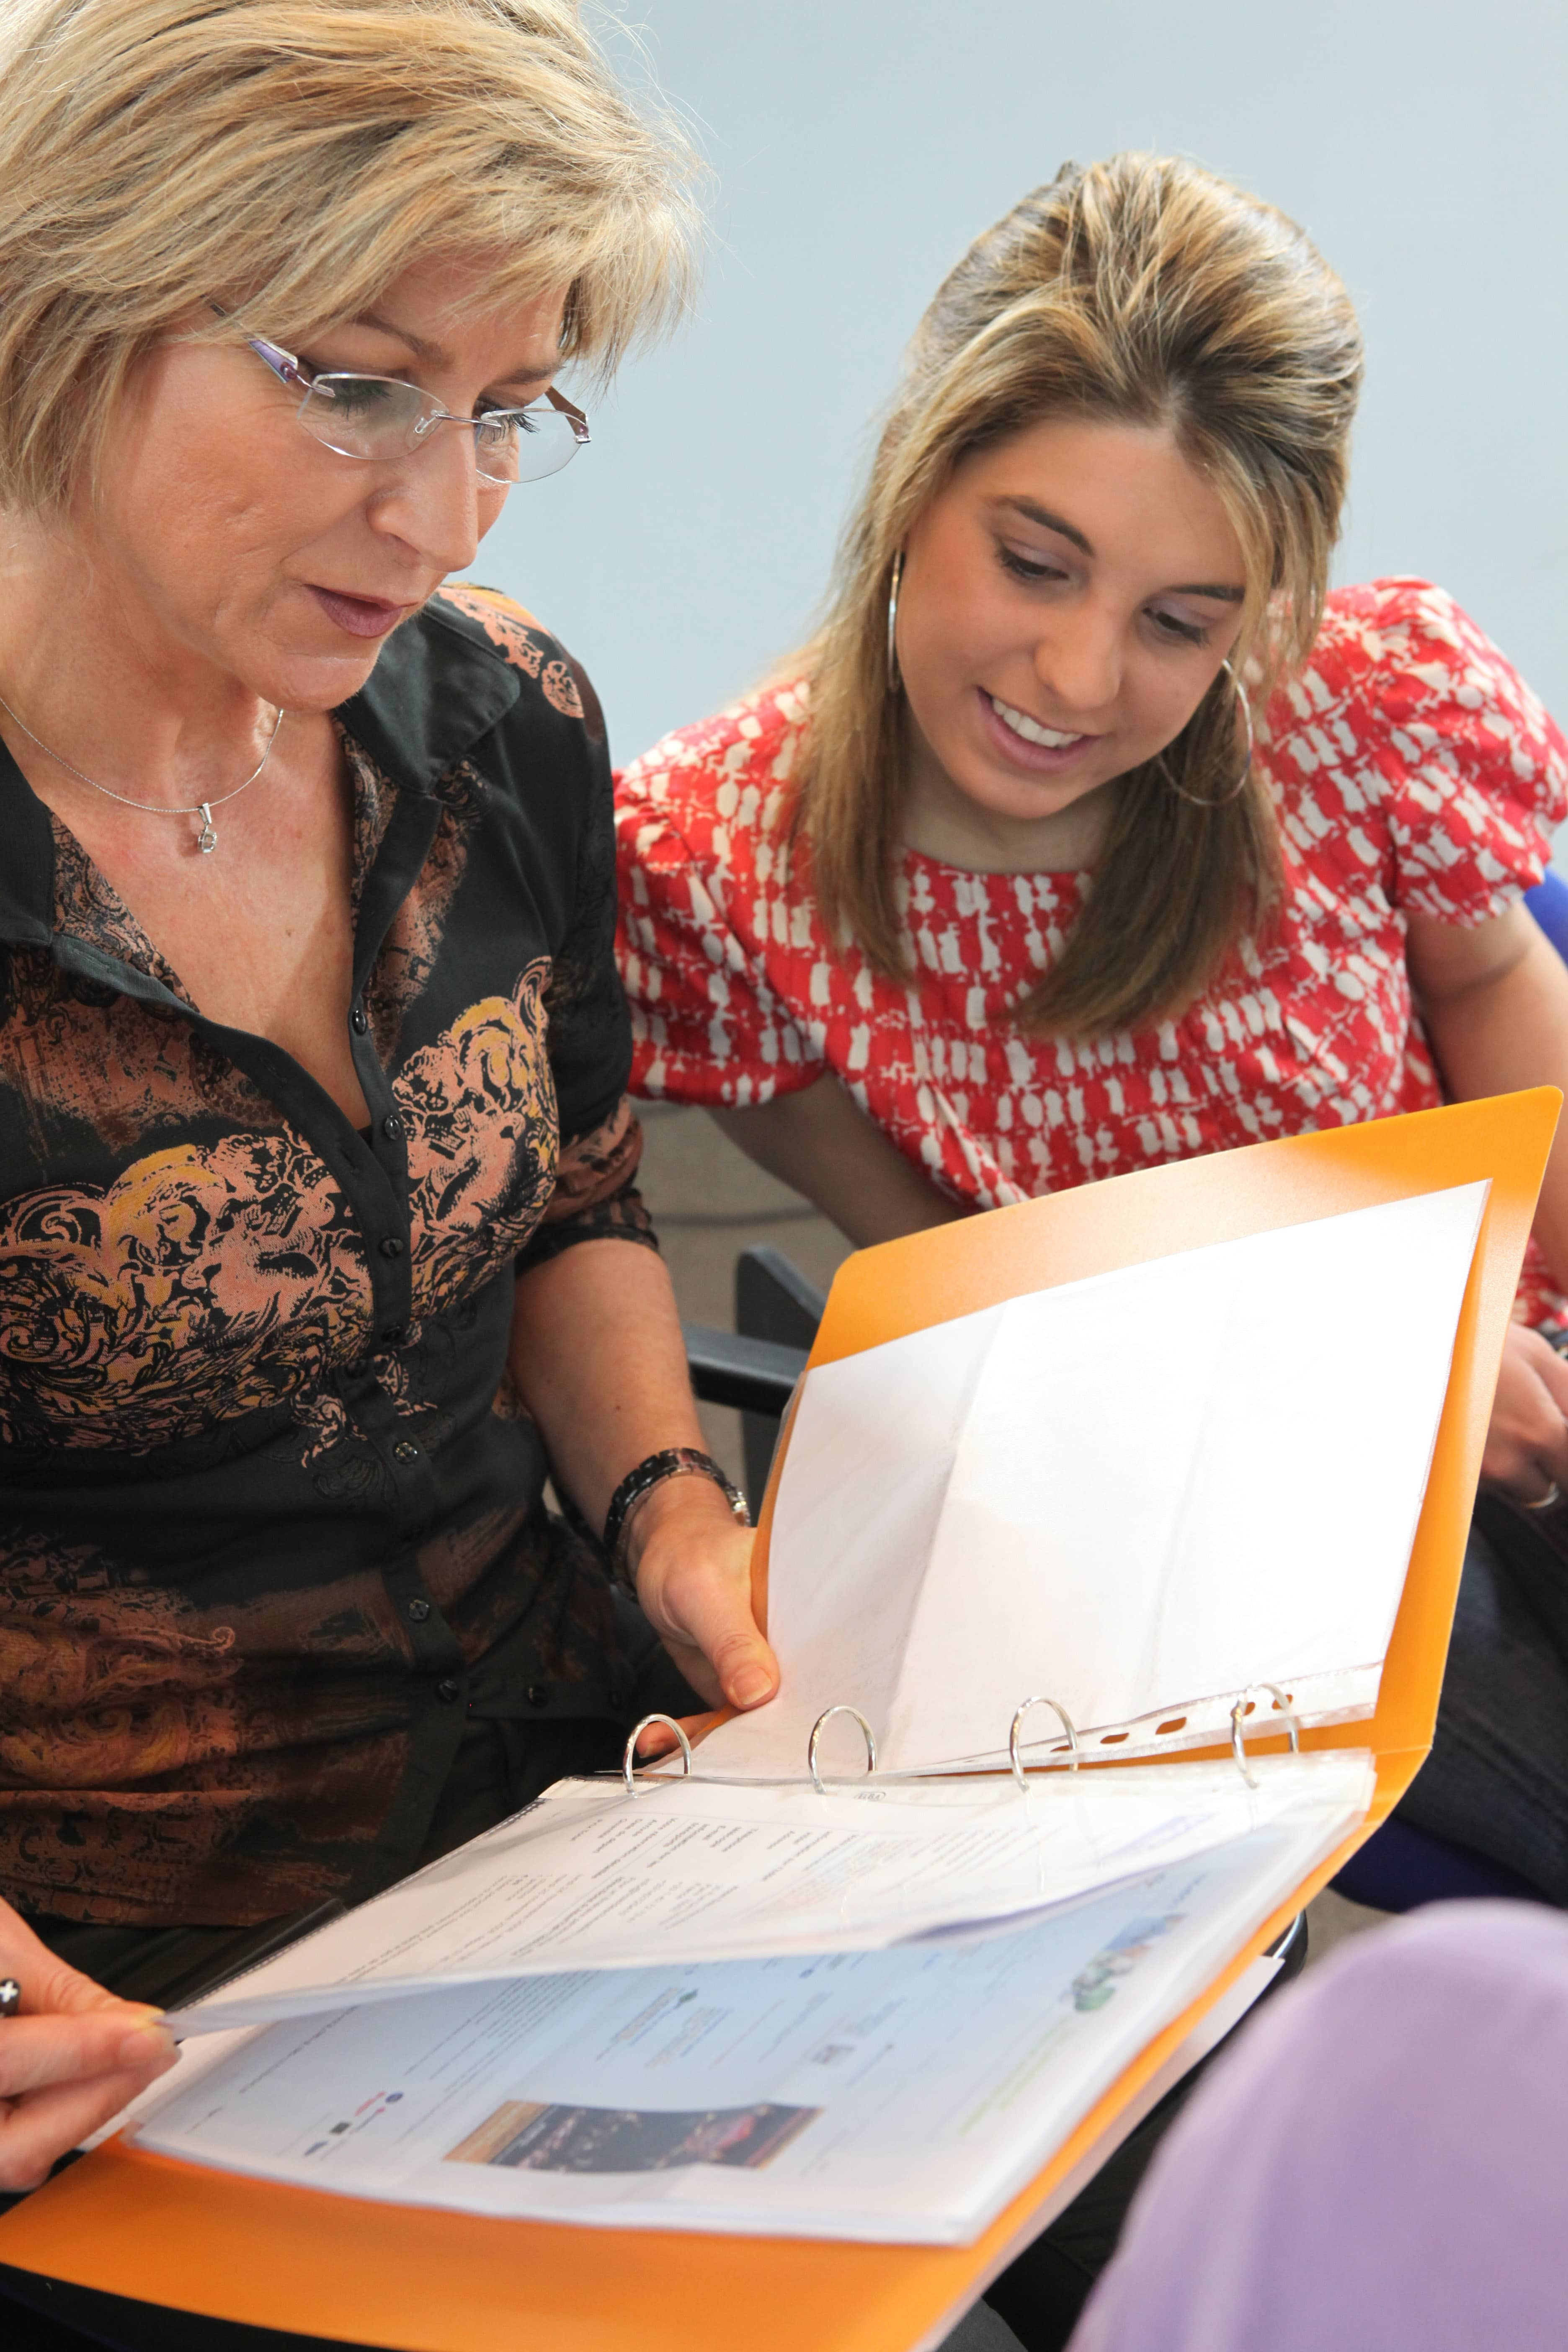 planning is critical to implementing co-teaching models